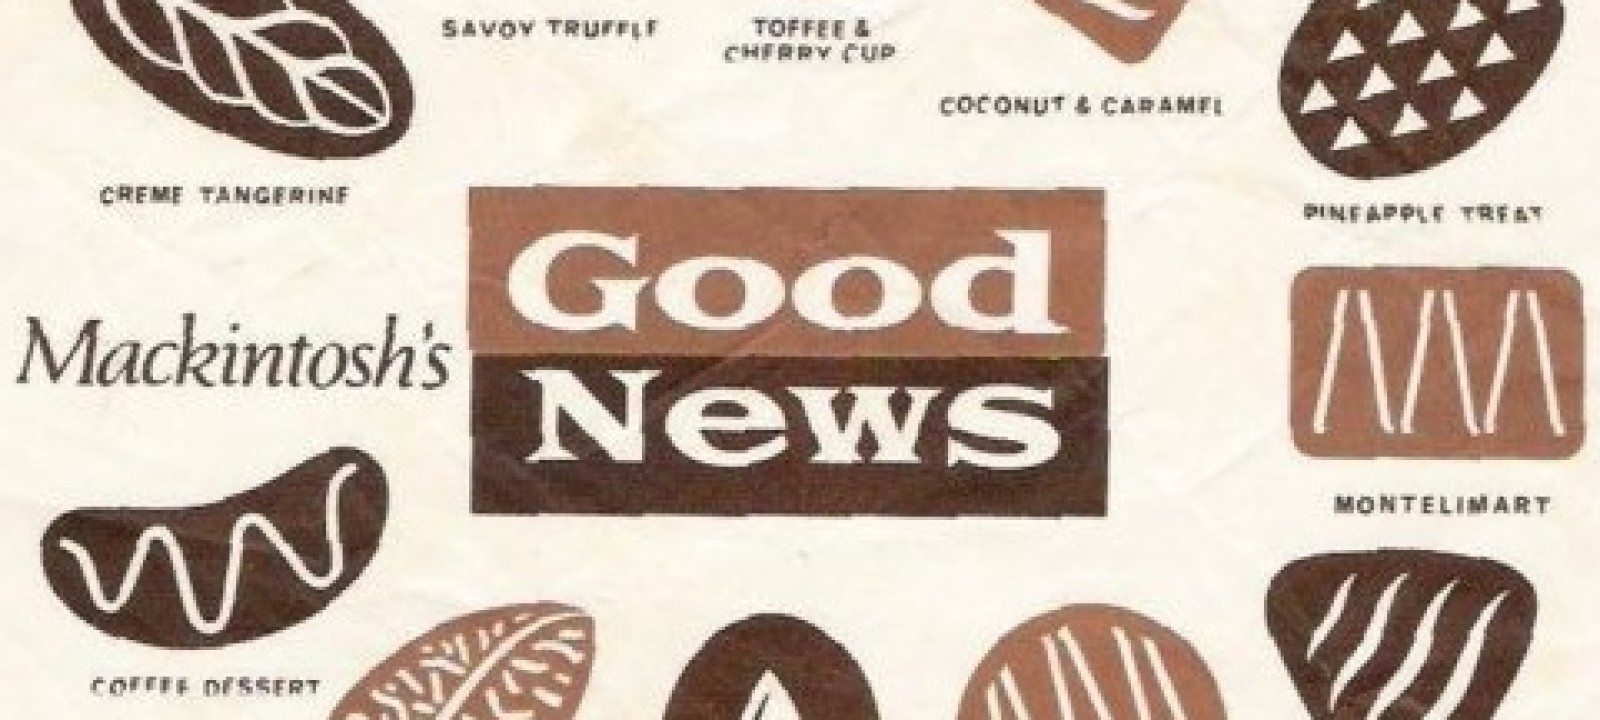 Good News chocolates